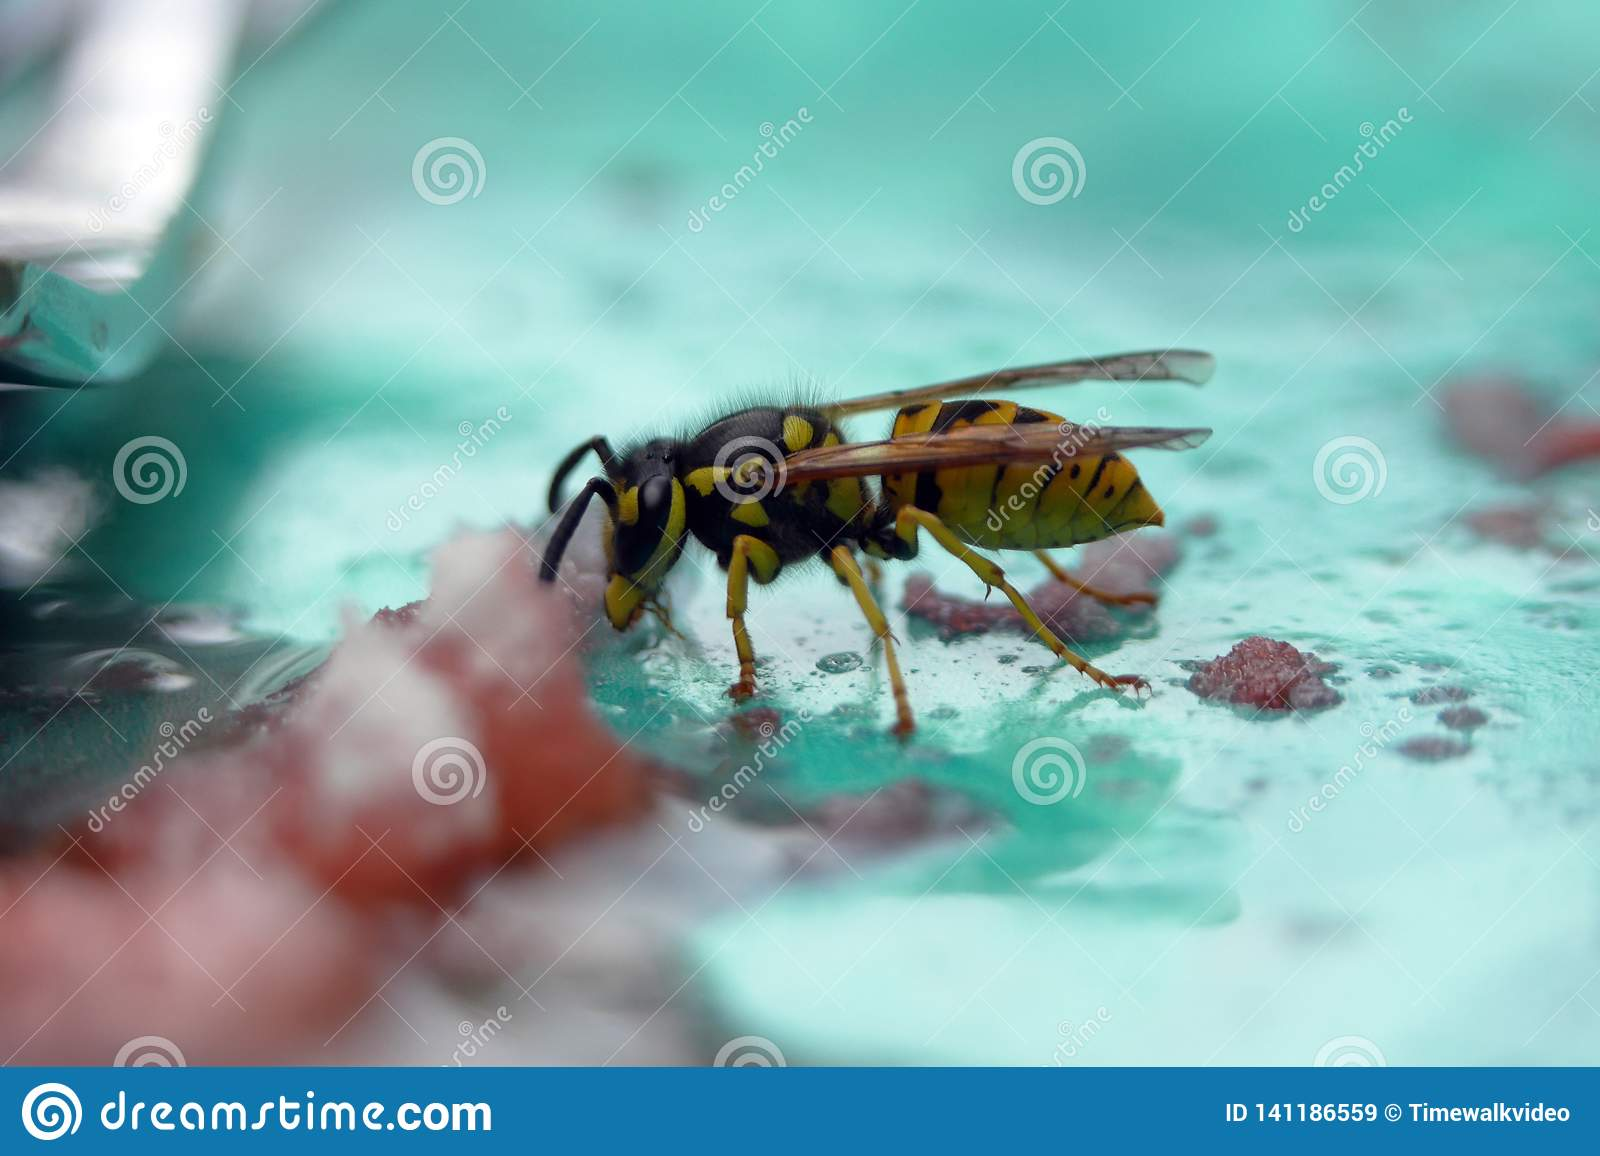 Yellow Jacket Drinks a Sugar Concoction